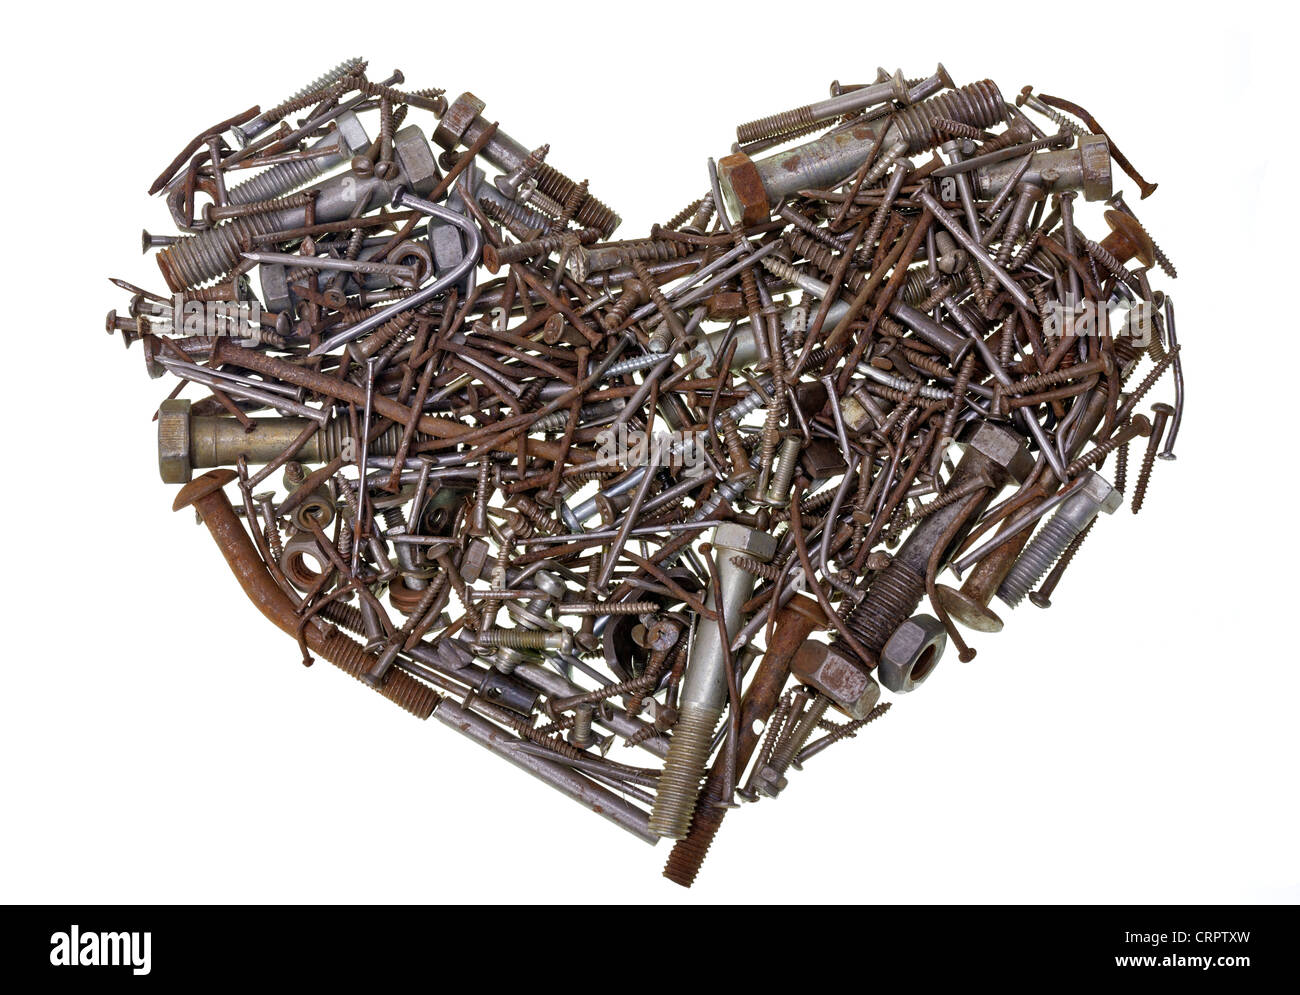 The heart of the old machine is made of rusted bolts and nails isolated concept Stock Photo